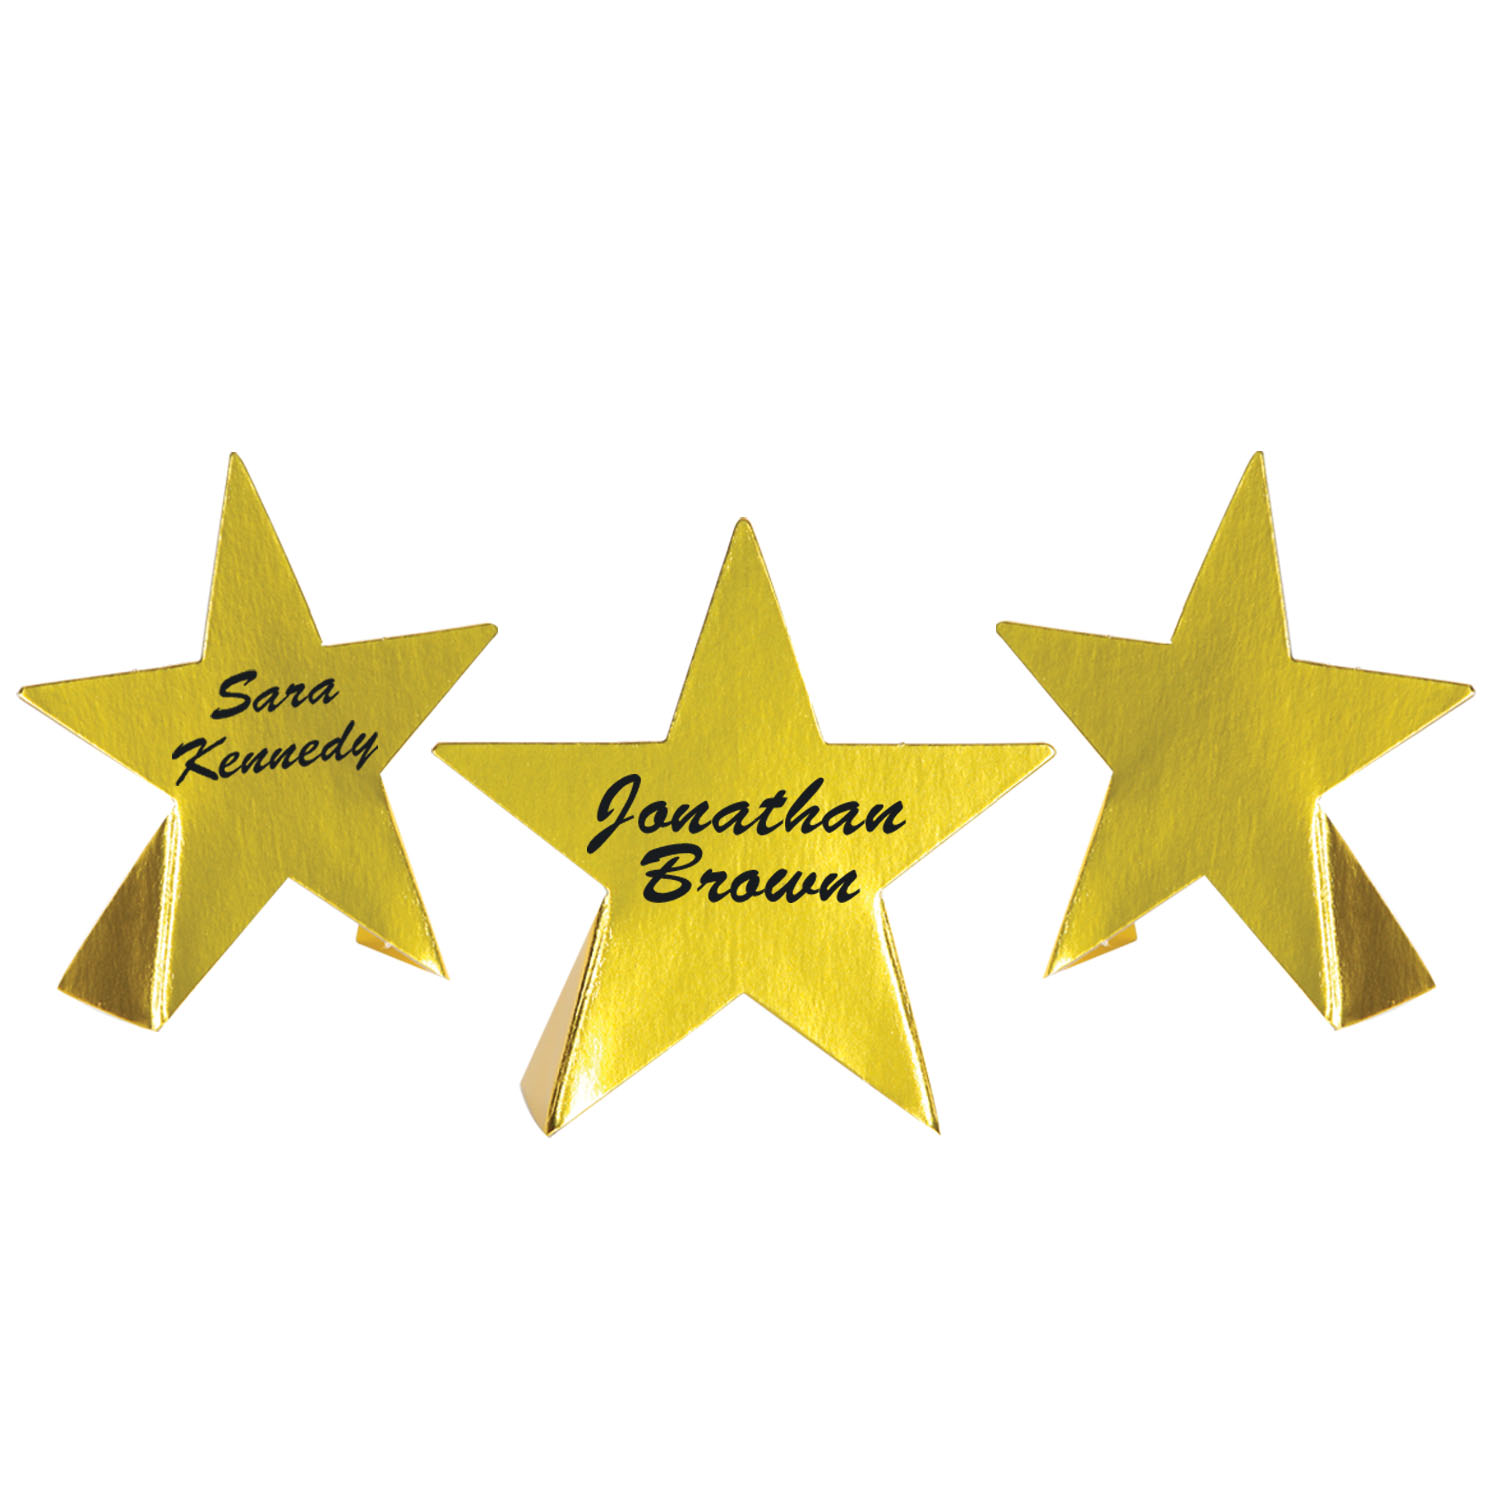 Foil Star Place Cards (Pack of 24) Foil Star Place Cards, decoration, place card, gold, new years eve, hollywood, star, wholesale, inexpensive, bulk